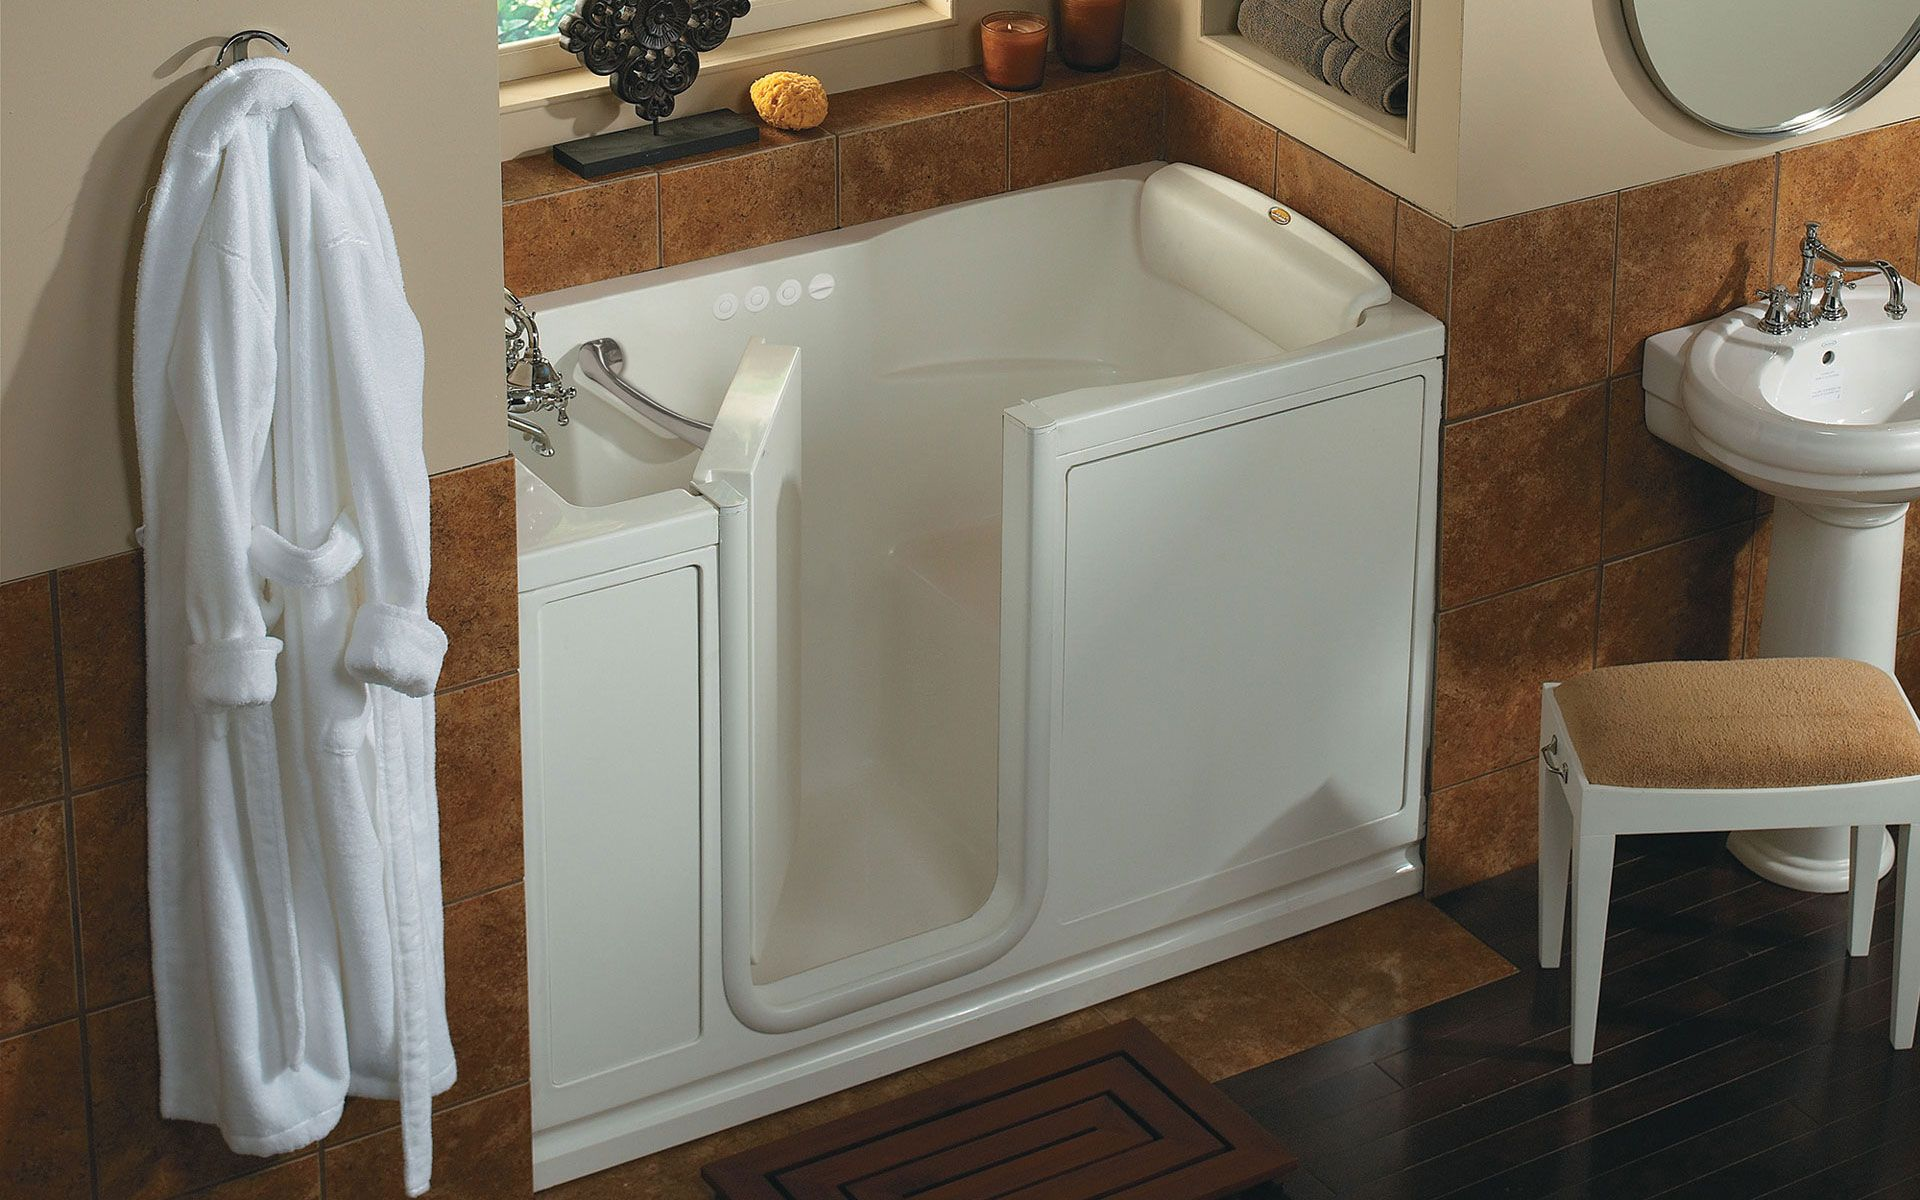 Jacuzzi Finestra Salon Spa Walk In Bathtub for Alcove Installa White walk  in tub Air   Whirlpool AlcoveWalk In Jacuzzi Tub w Shower http www disabledbathrooms org  . Whirlpool Insert For Bathtub. Home Design Ideas